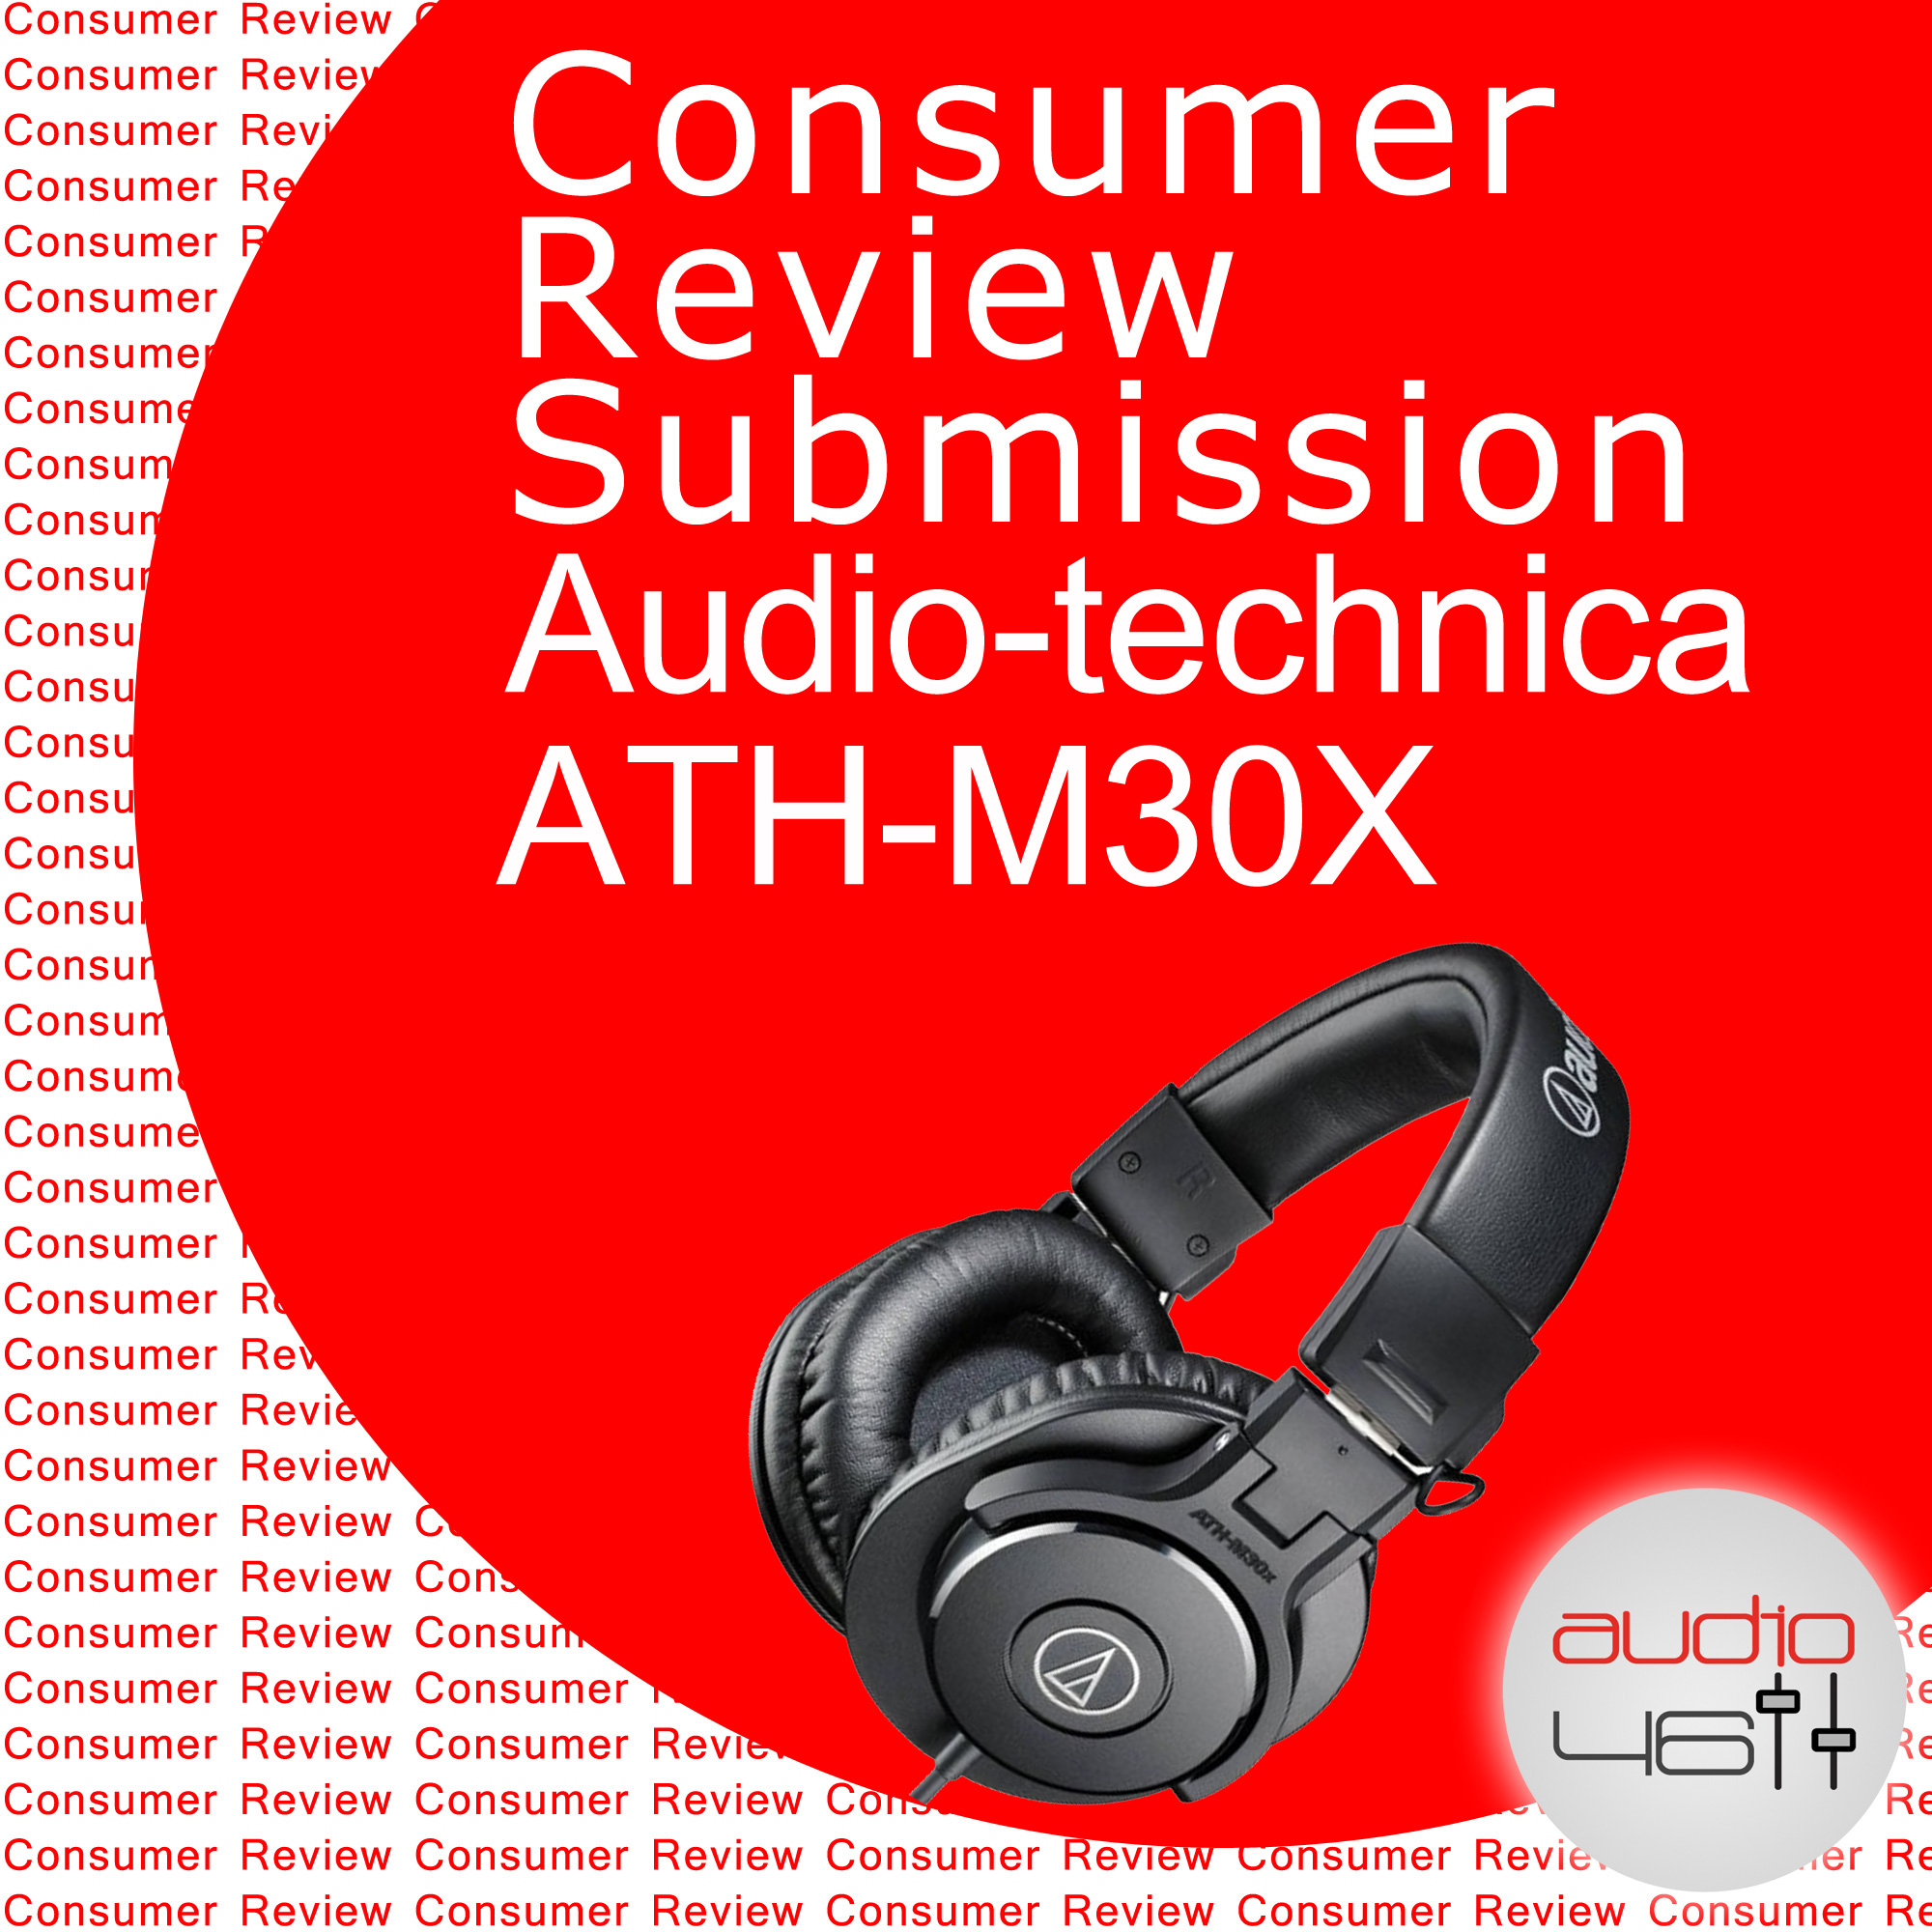 Consumer Review Audio-Technica ATH-M30x